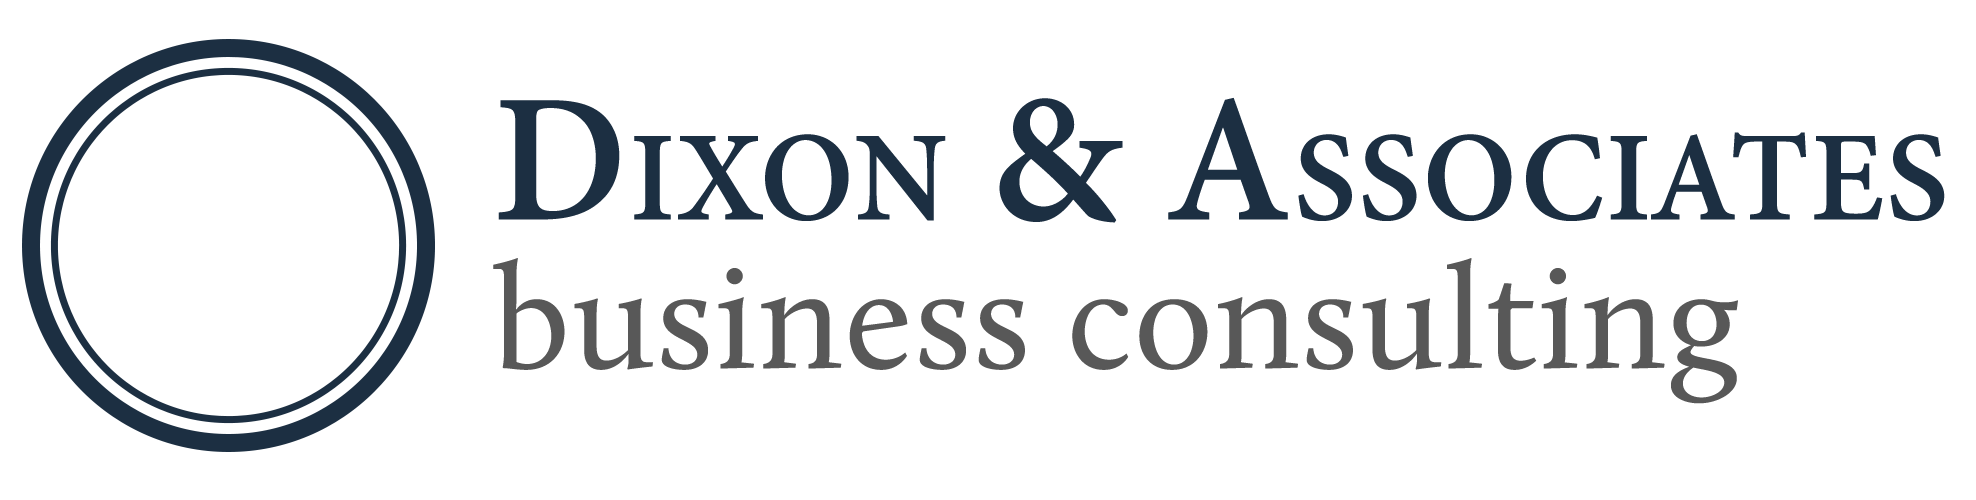 dixon-associates-business-consulting-logo